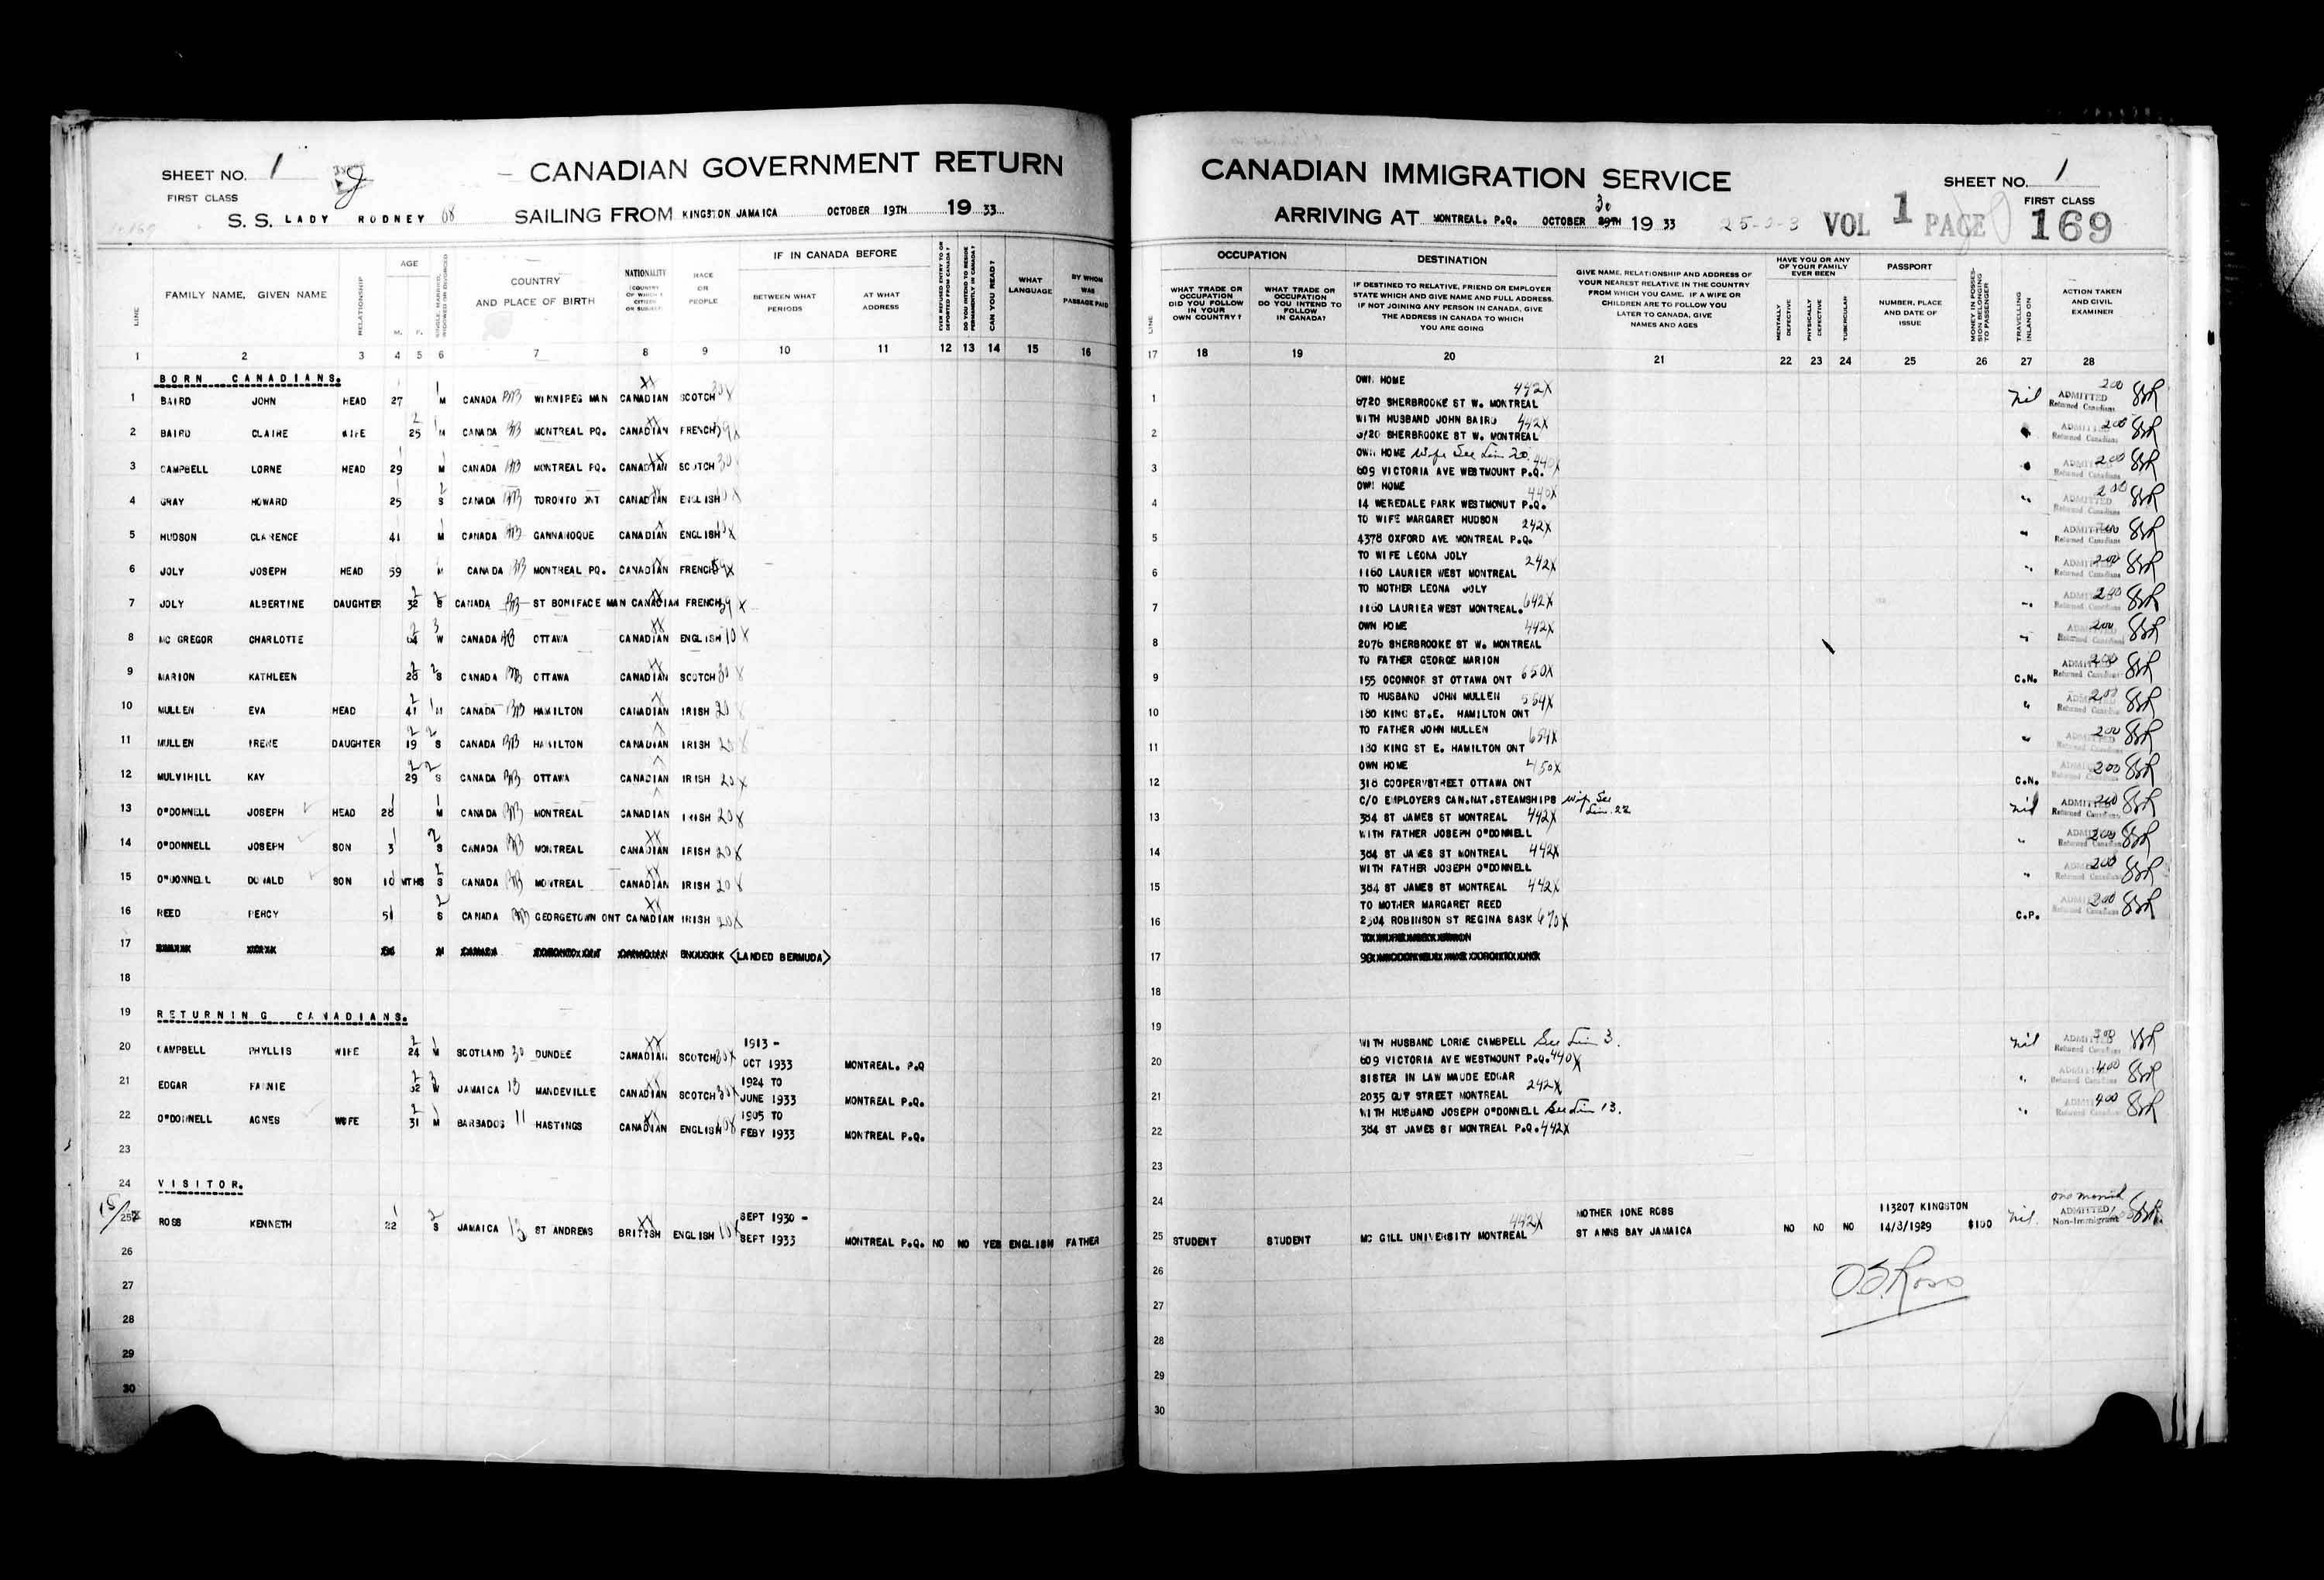 Title: Passenger Lists: Montreal (1925-1935) - Mikan Number: 134839 - Microform: t-14912